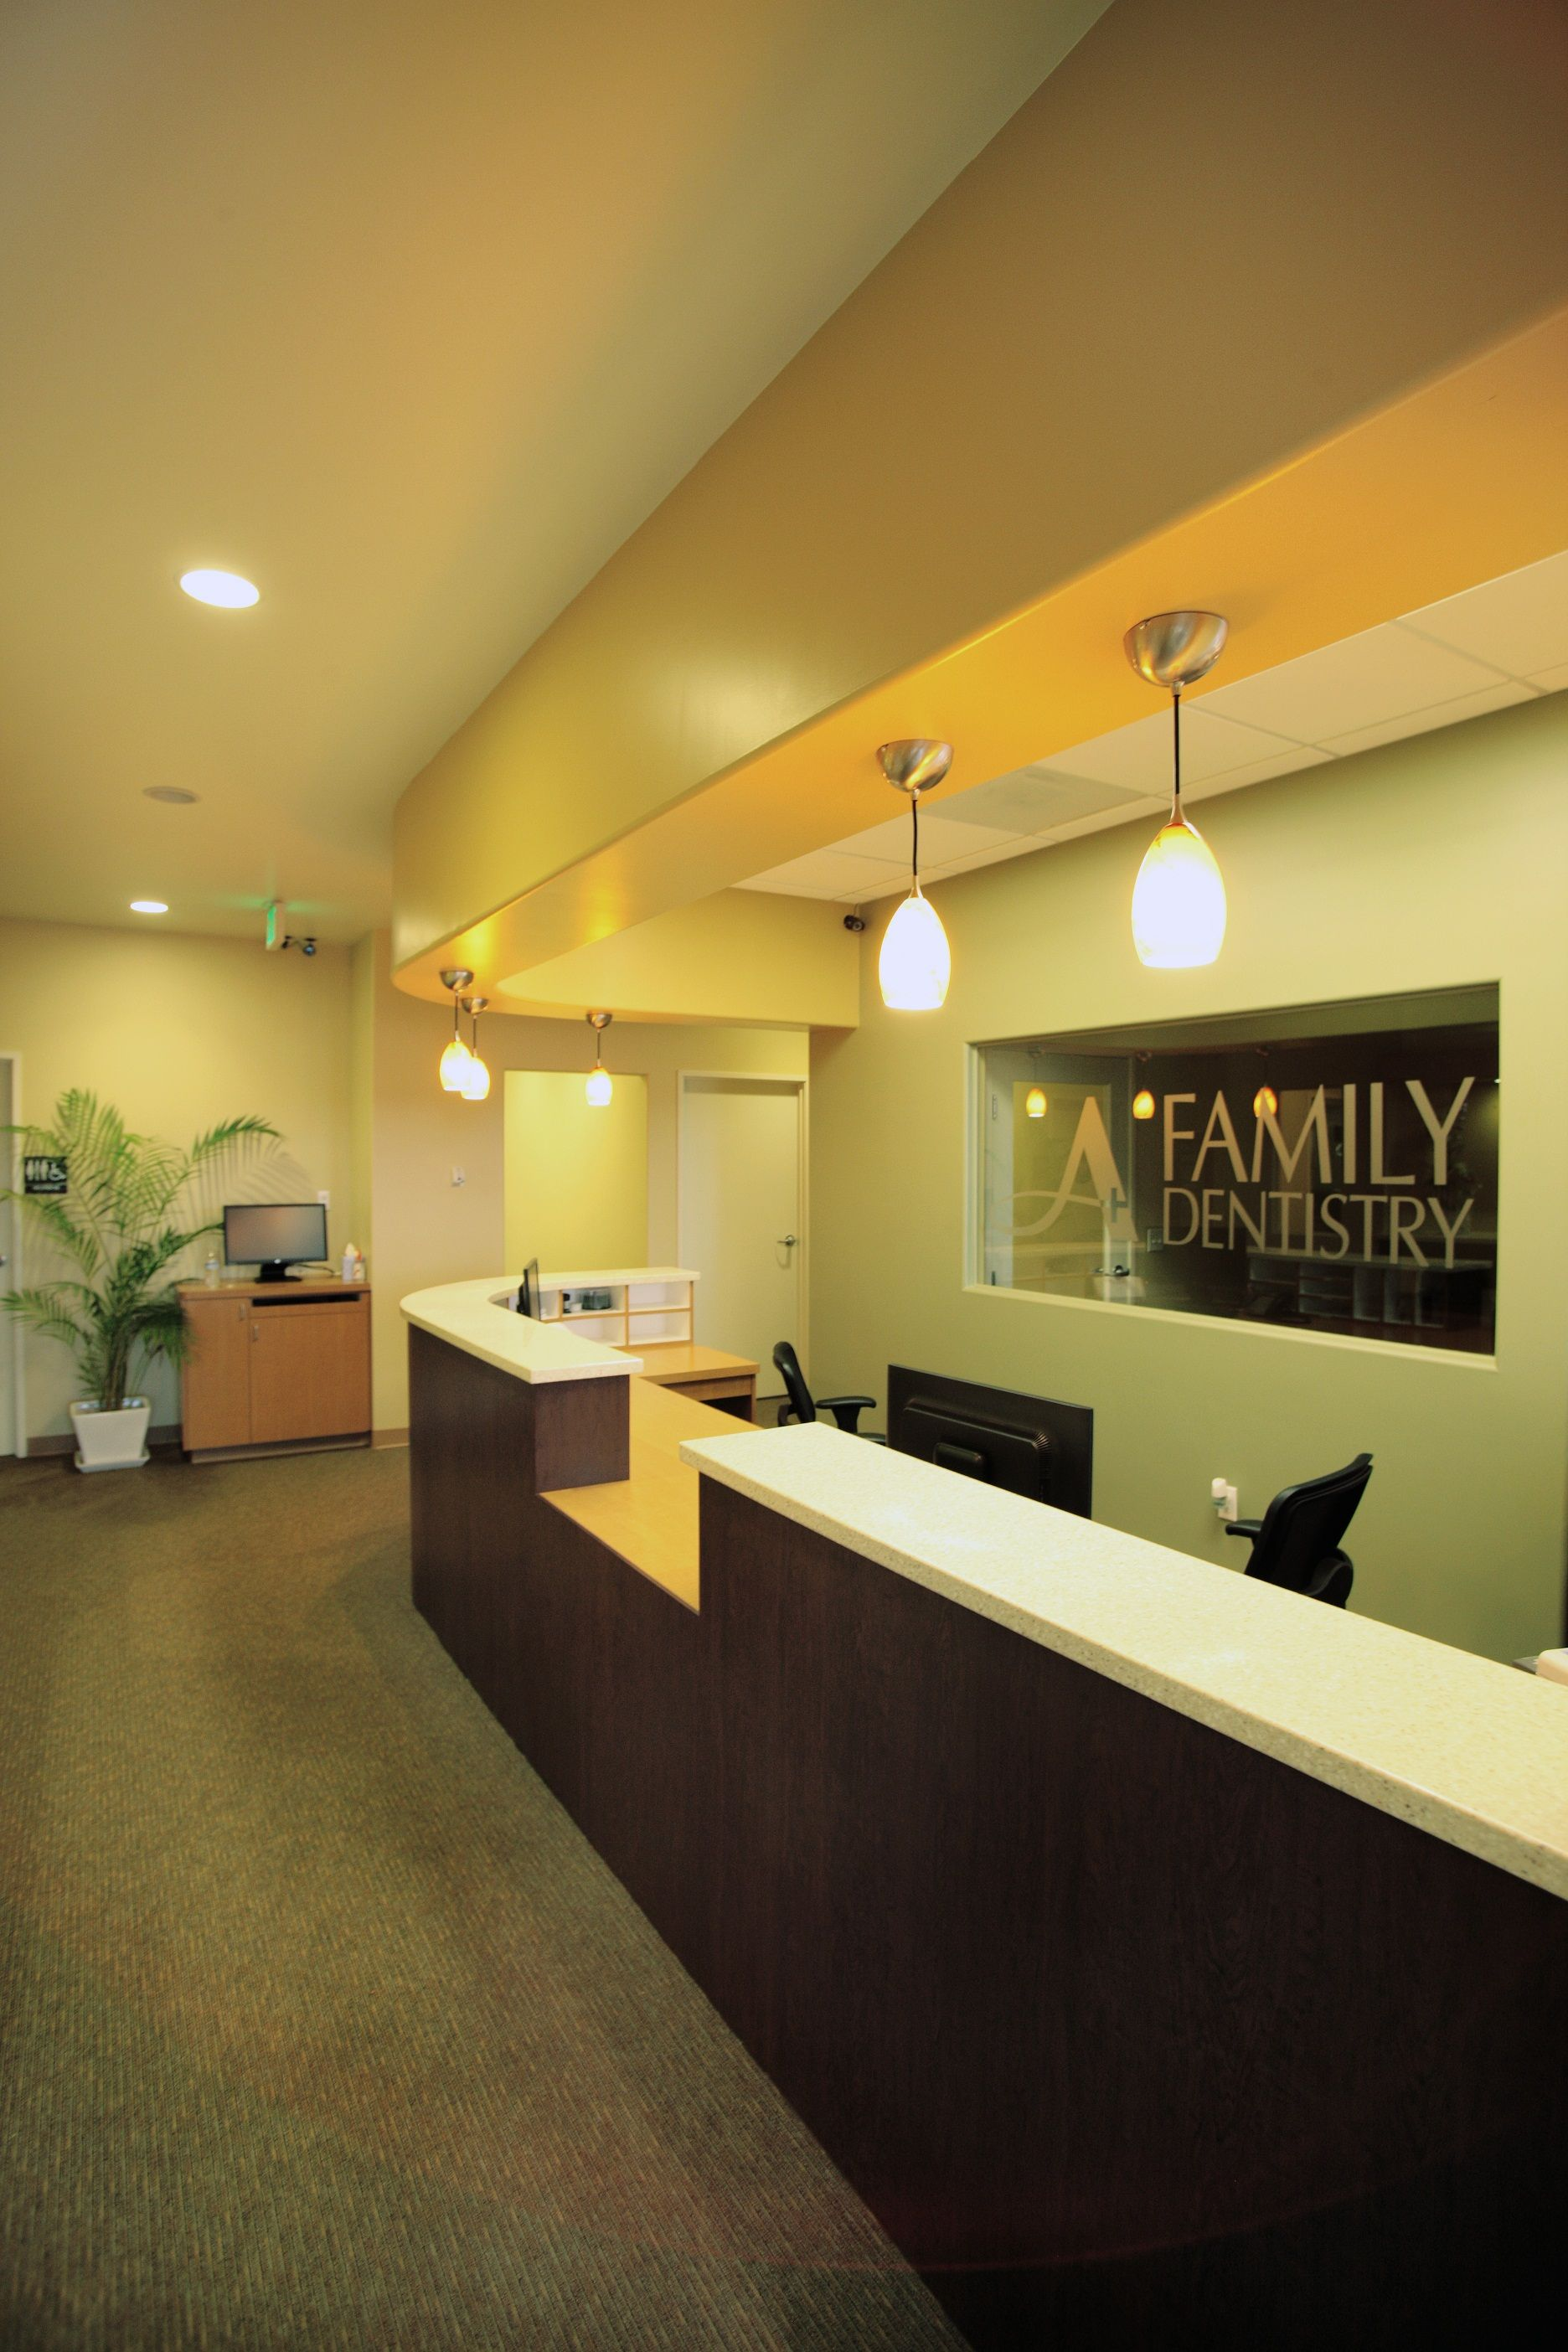 Si simplastic 3 way catheter - A Family Dentistry Reception Area Www Aplusfamilydentistry Com